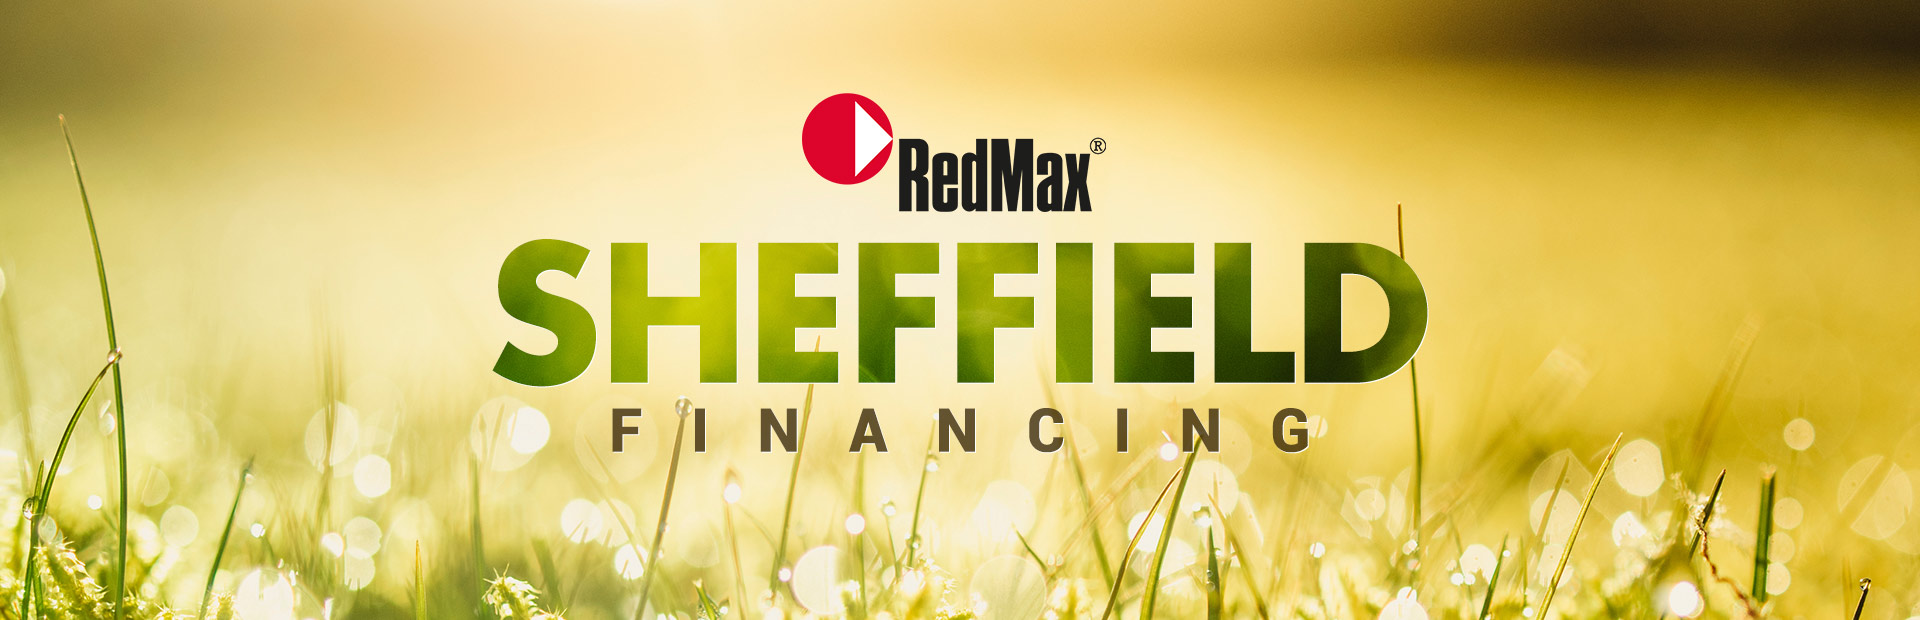 RedMax: Sheffield Financing